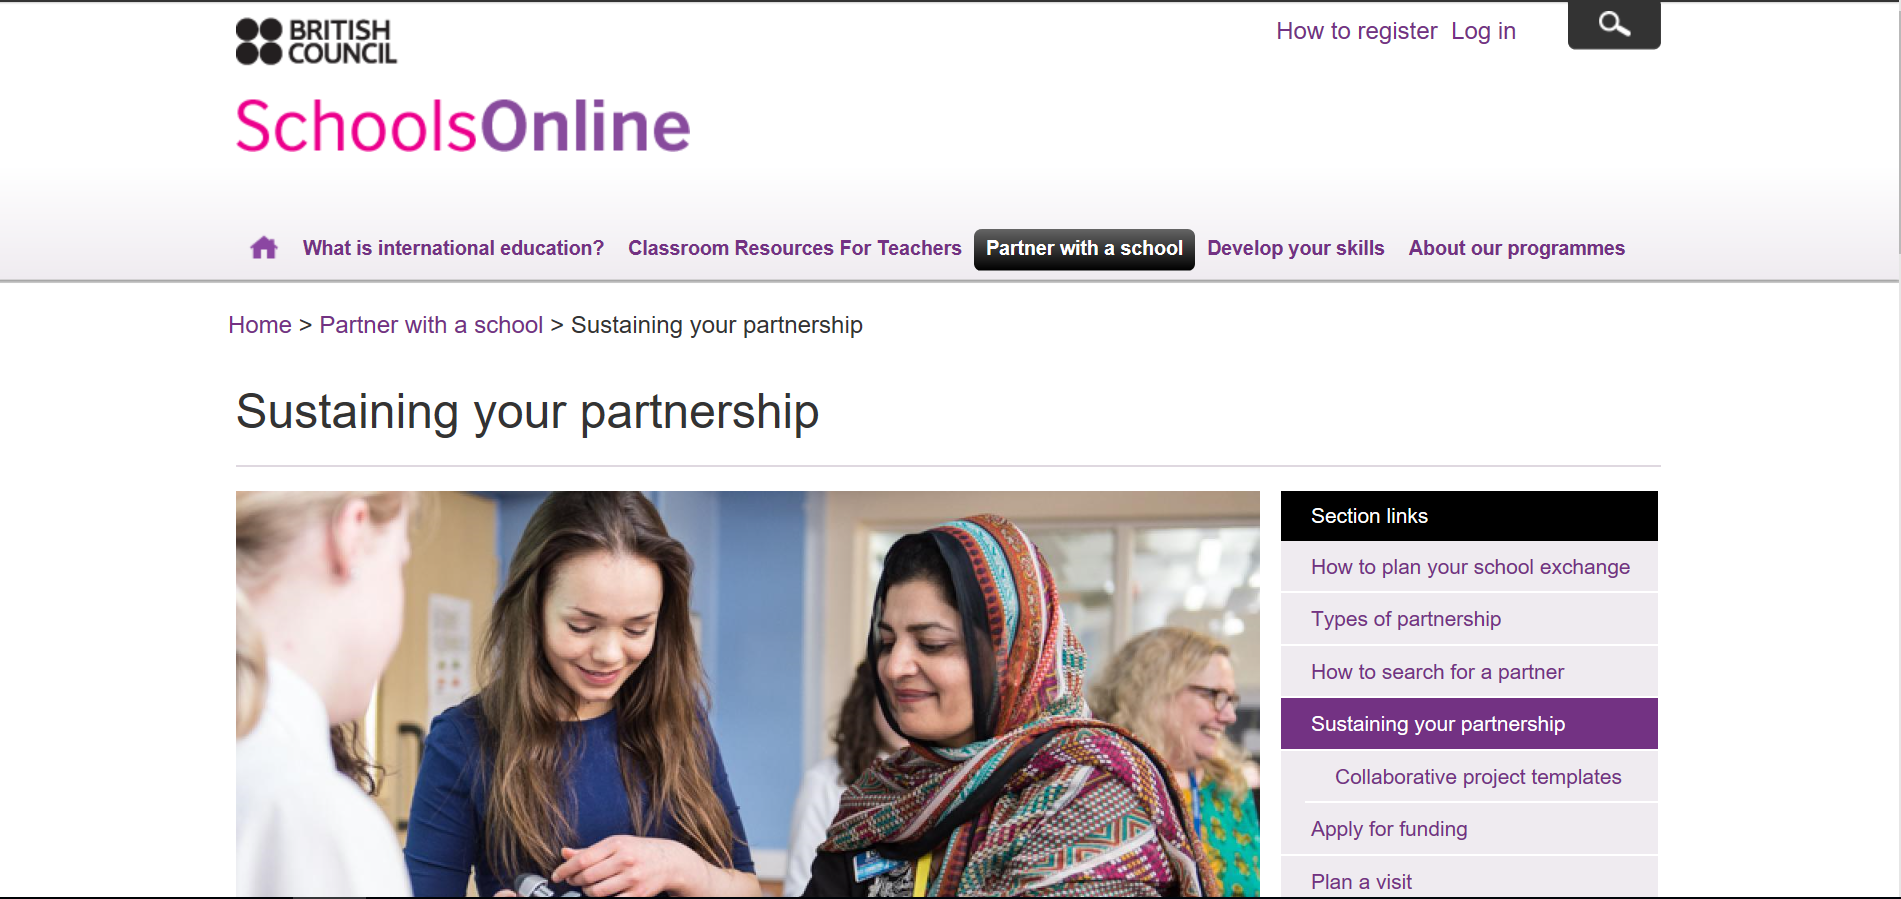 British Council School Partnership Scheme website.